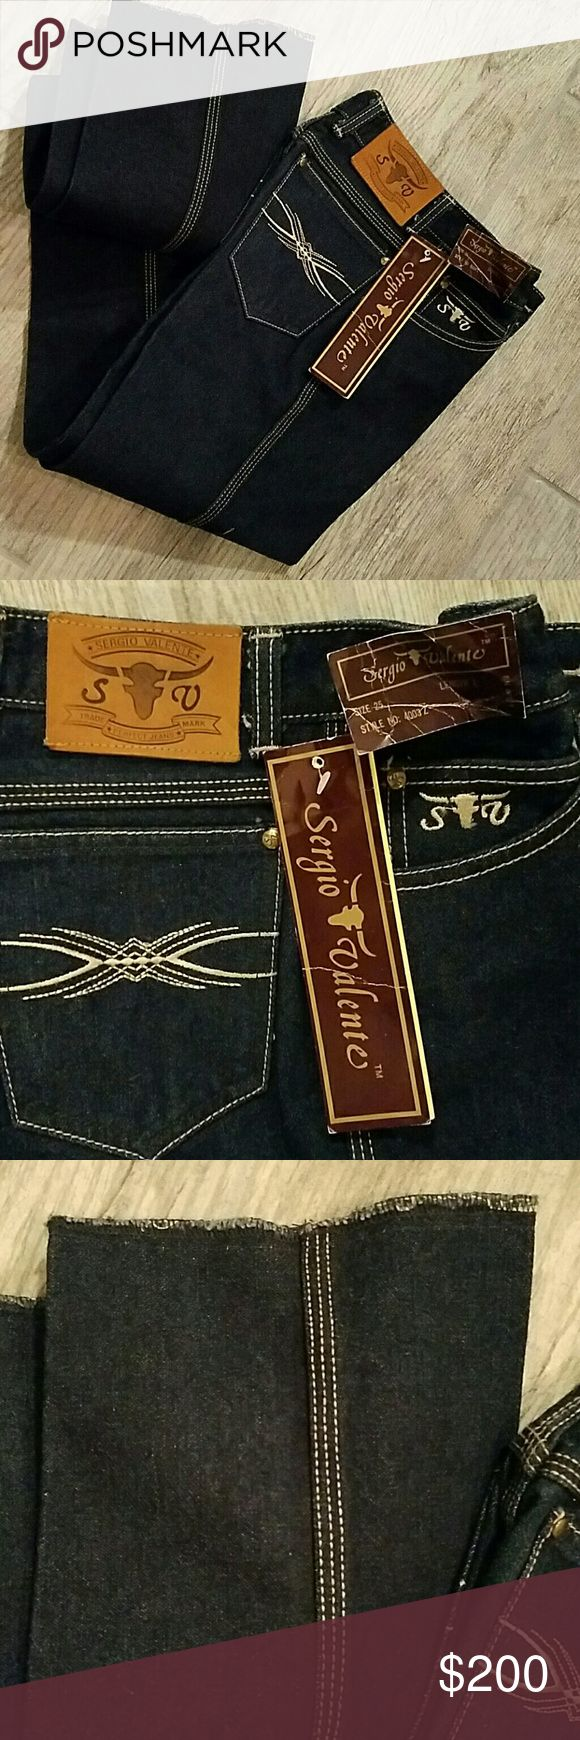 ORIGINAL VINTAGE SERGIO VALENTE JEANS SIZE 25 omg! THESE ARE ALL ORIGINAL SERGIO VALENTE JEANS WITH ORIGINAL TAGS STILL INTACT UNHEMMED LIKE THEY WERE ALWAYS SOLD! YOU WILL NEVER FIND THESE AGAIN! SIZE 25 LENGTH LONG INSEAM 36 INDIGO WASH PERFECT PERFECT PERFECT BROOKE SHIELDS CALLED AND SHE  WANTS HER JEANS BACK #THROWBACK #1970'S Sergio Valente Jeans Skinny